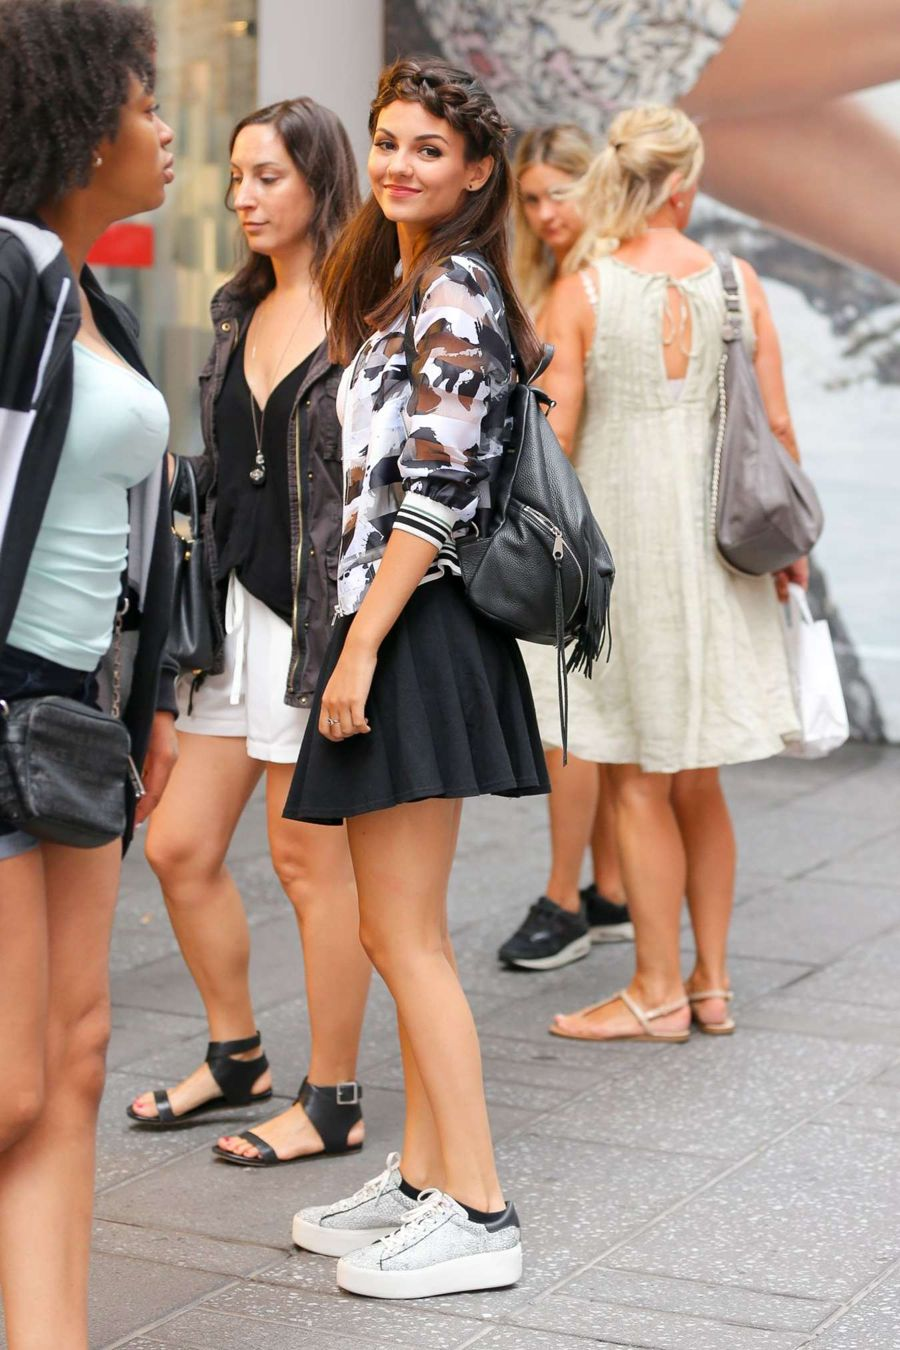 Victoria Justice Shows Off Toned Belly in Mini Skirt